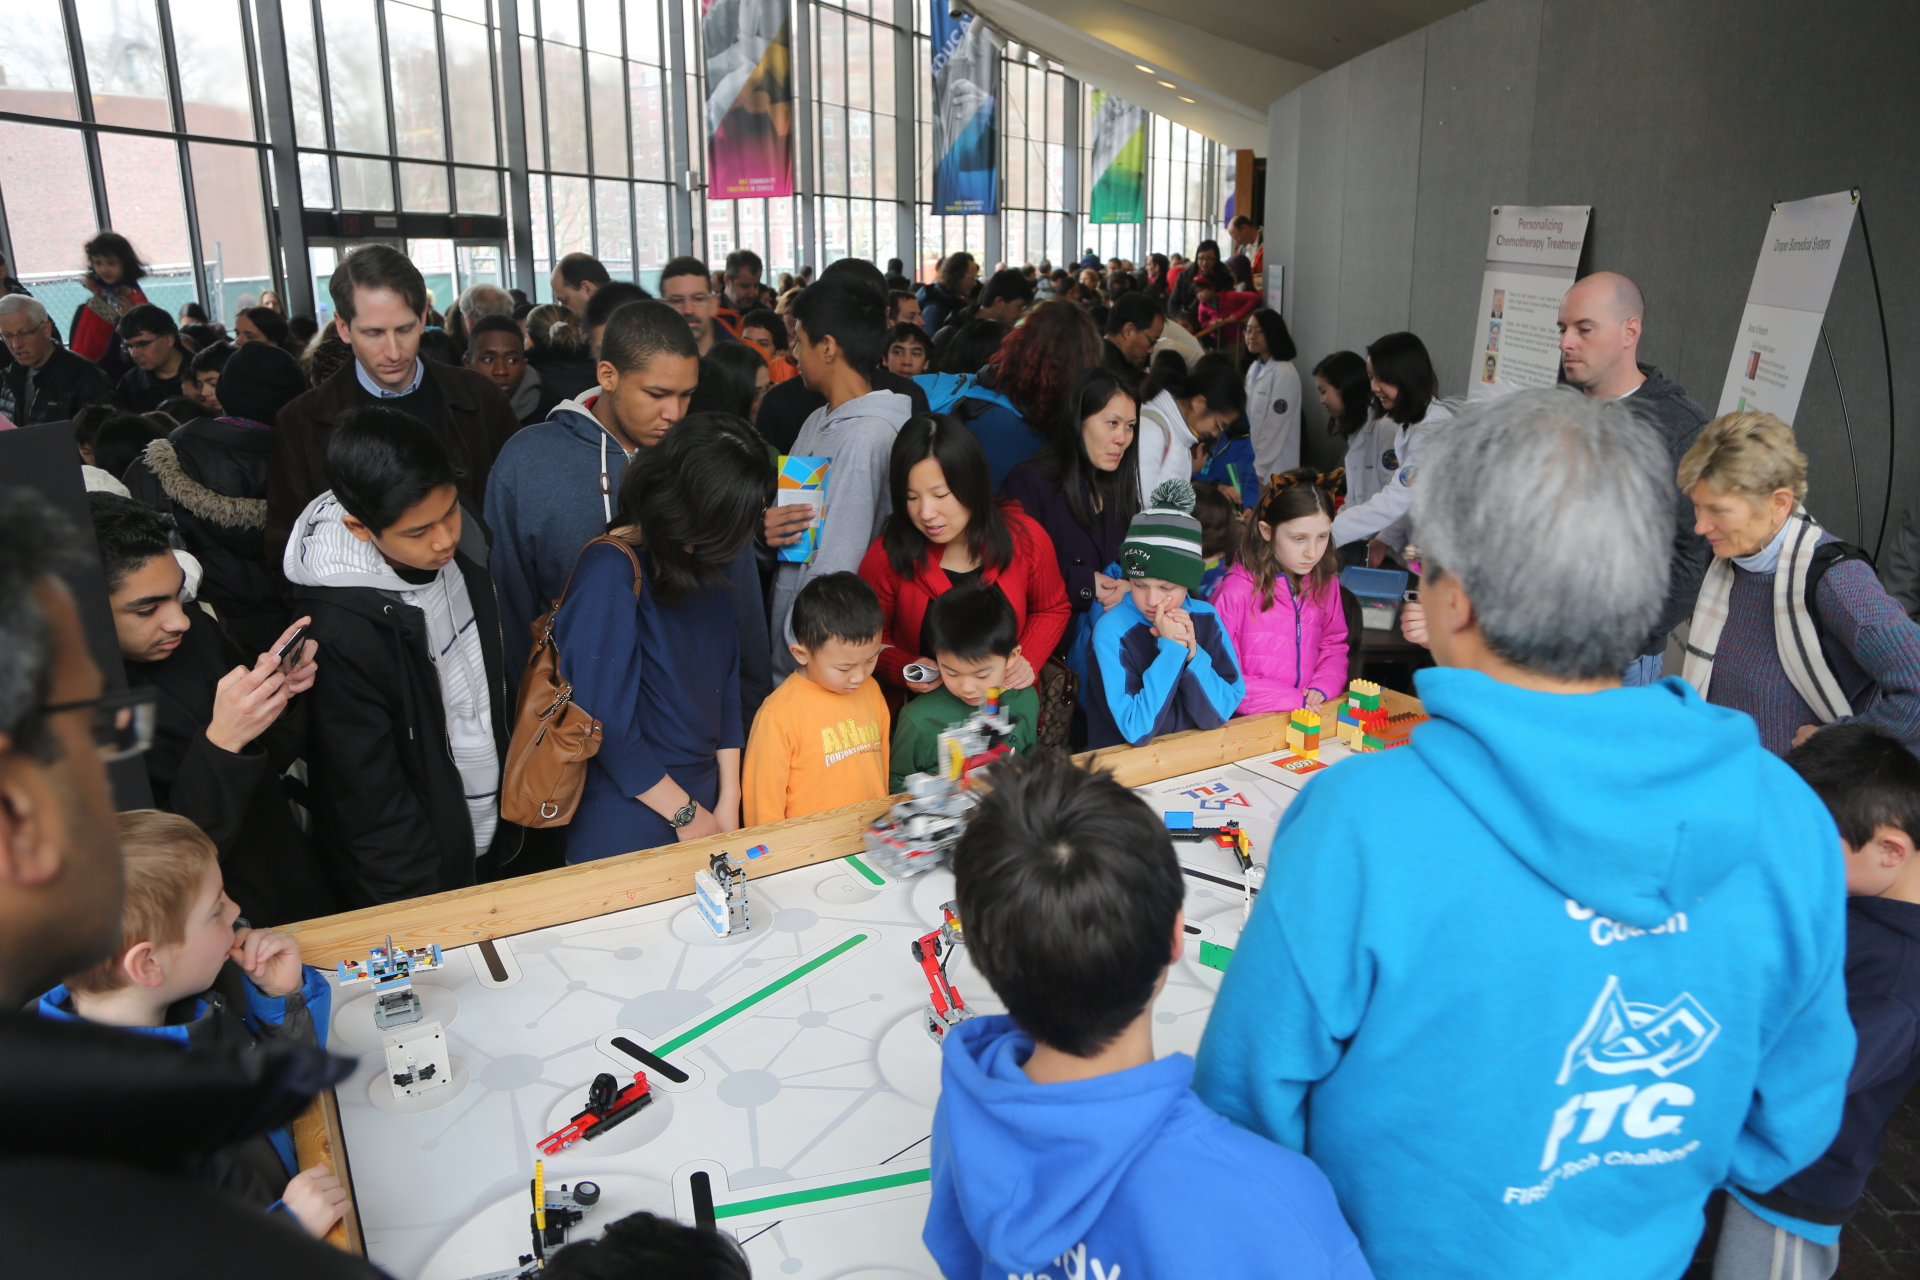 MIT Science Saturday